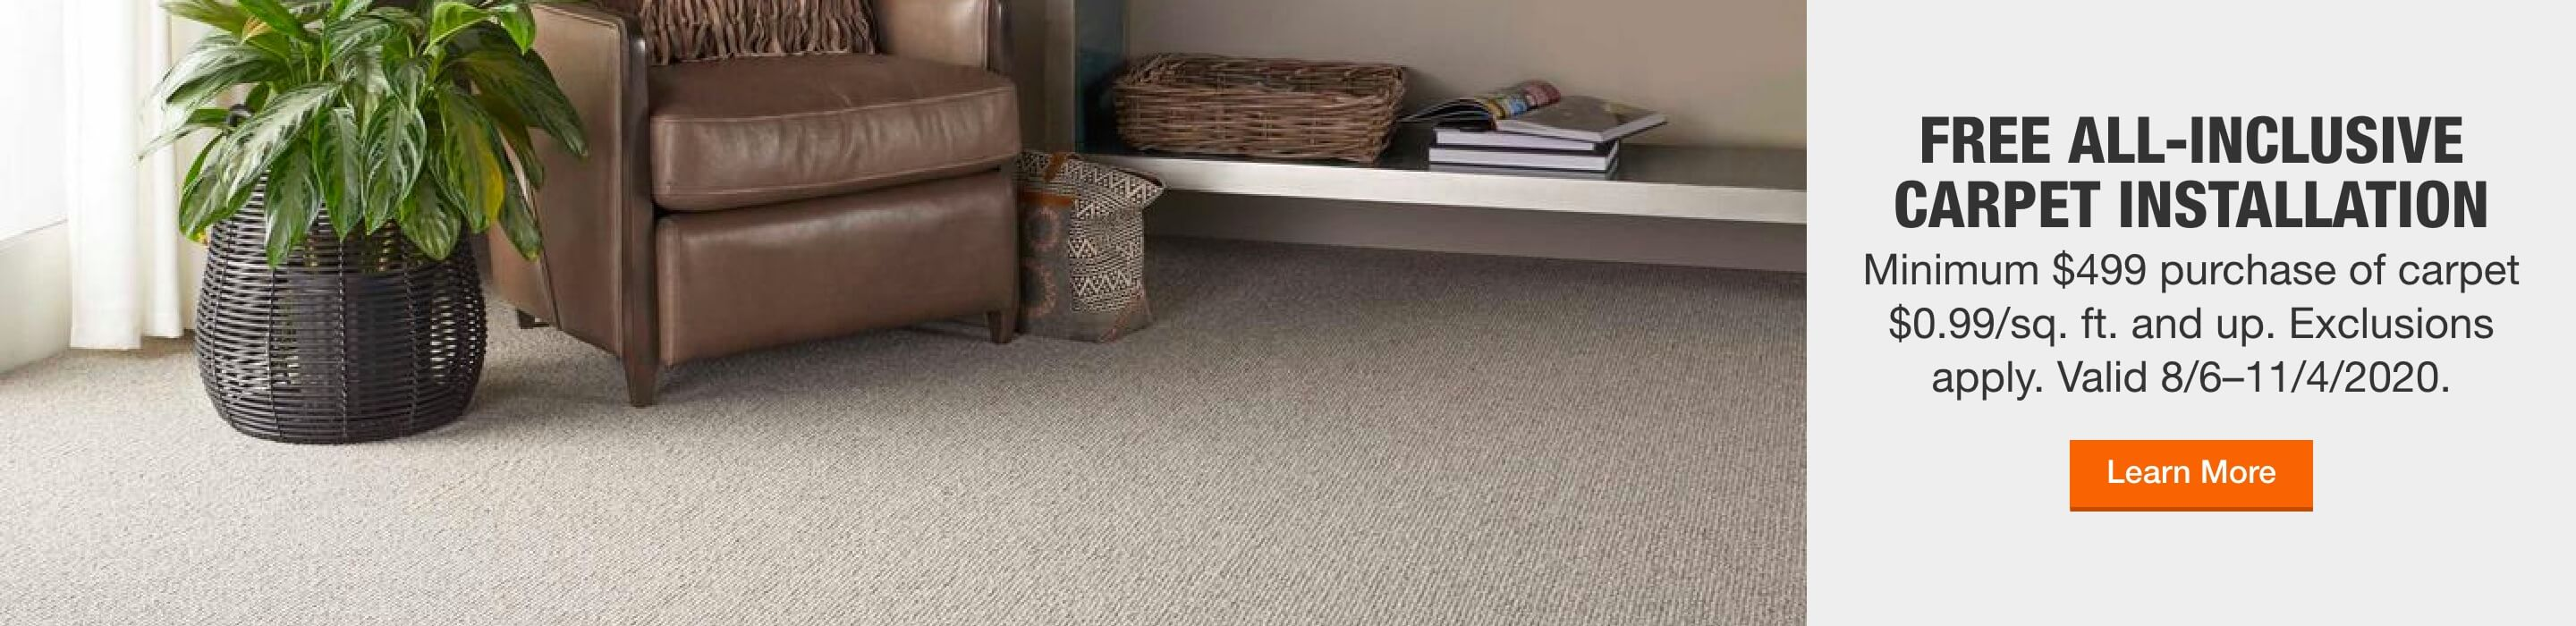 FREE ALL-INCLUSIVE CARPET INSTALLATION  Minimum $499 purchase of carpet $0.99/sq. ft. and up. Exclusions apply. Valid 8/6–11/4/2020.